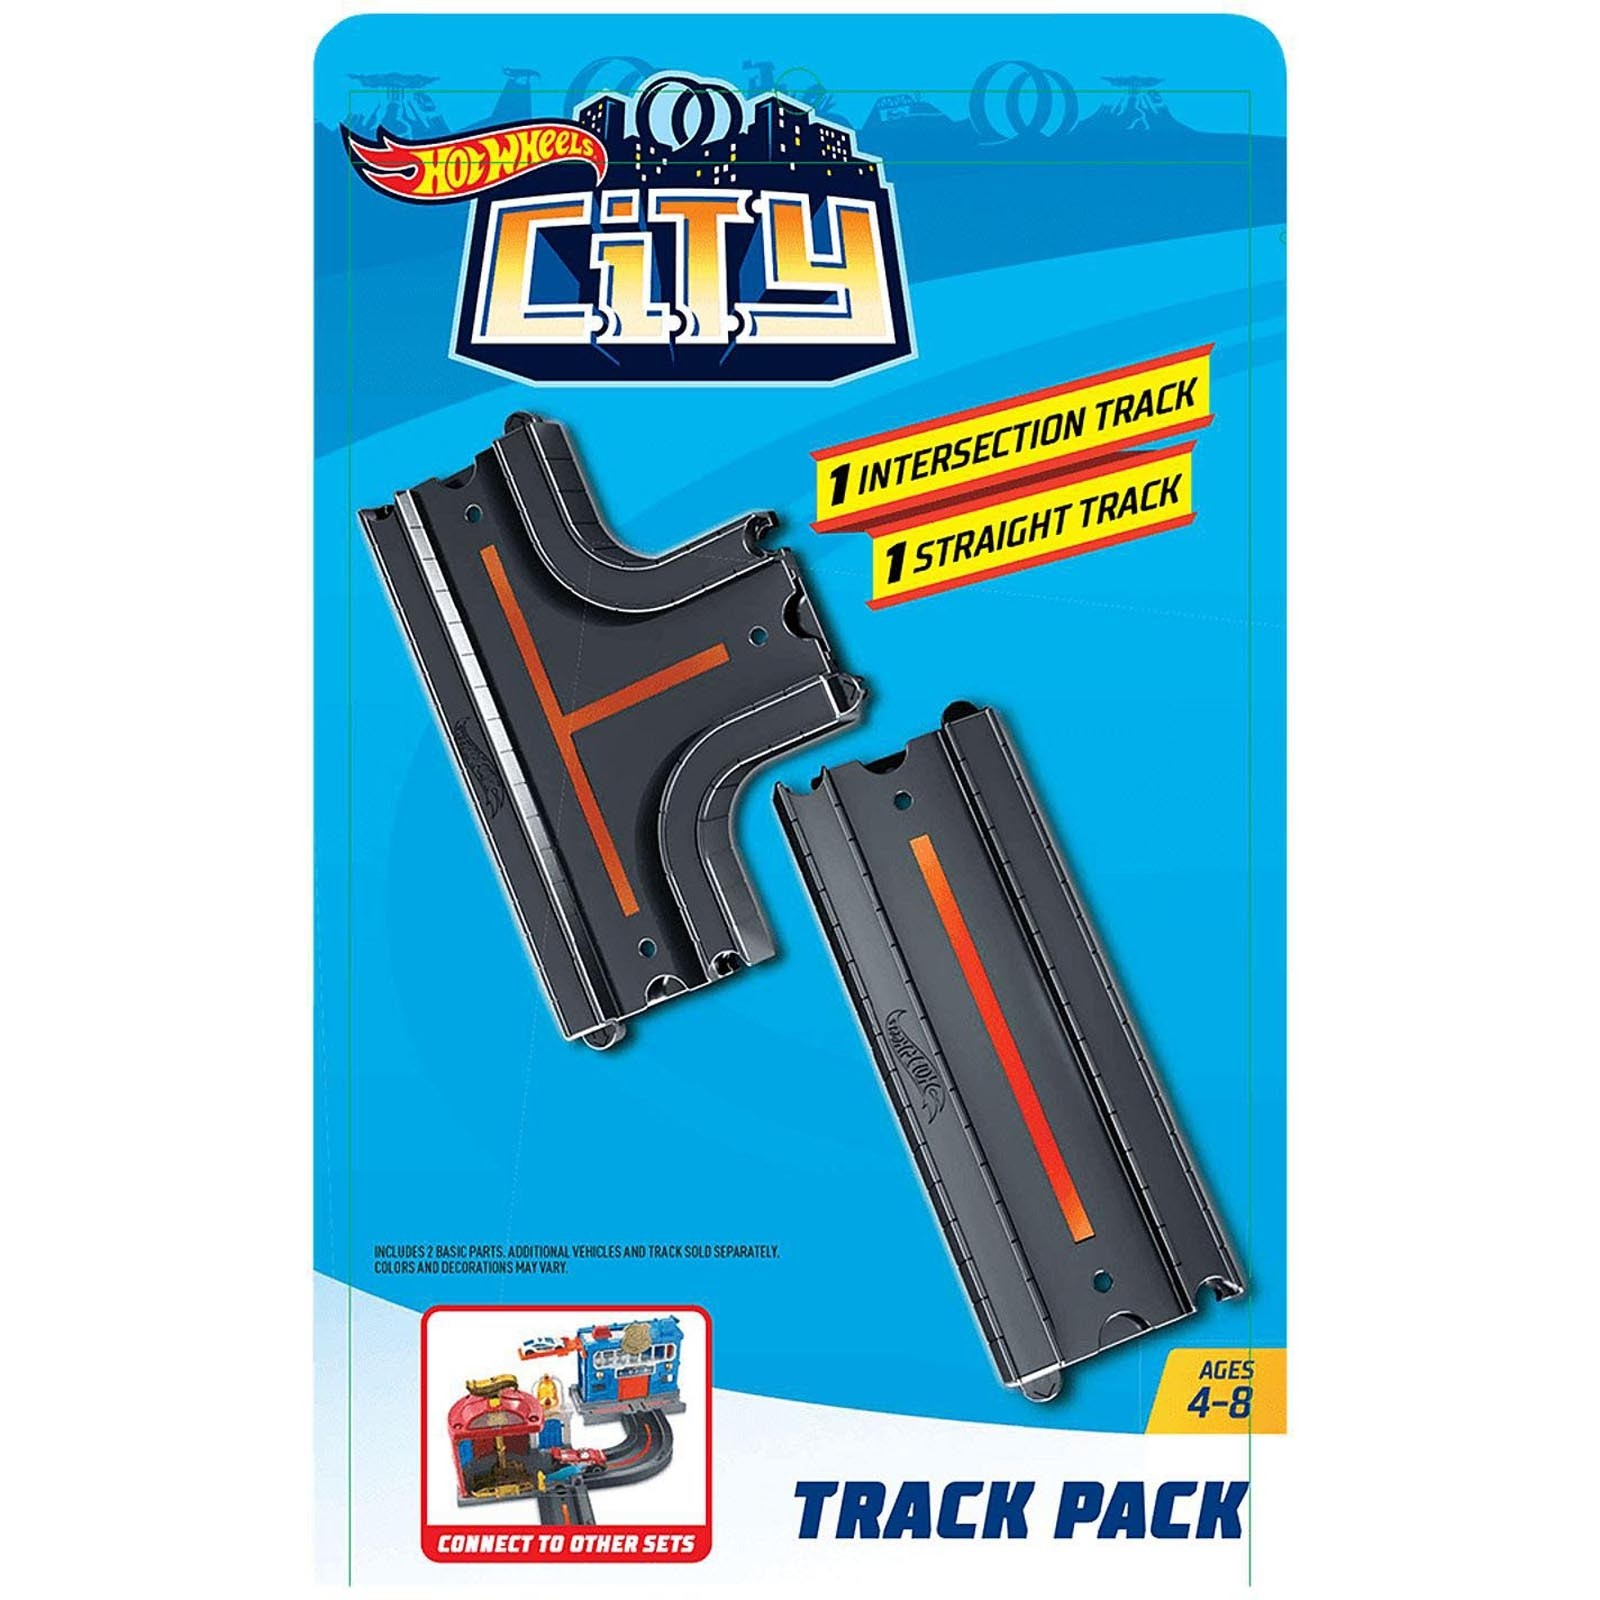 Pista Hot Wheels - 1 Seção Reta e 1 Intersecção - HW City - GBK38